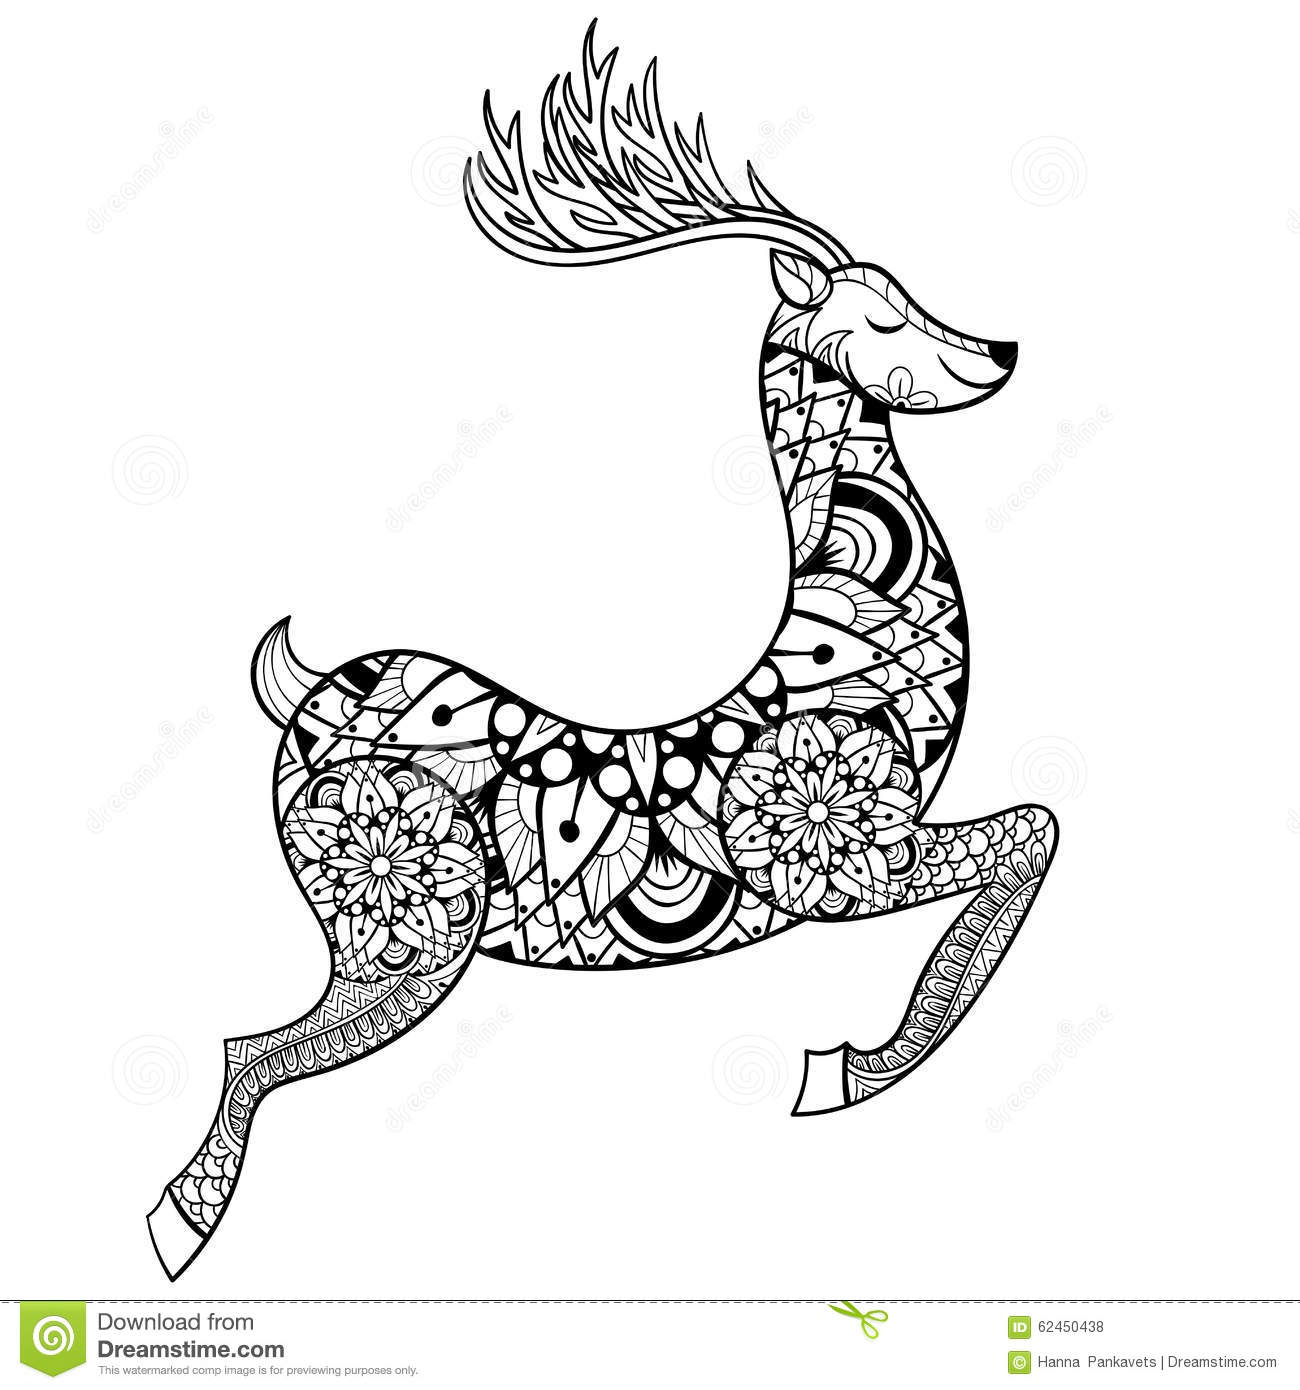 Stress Coloring Pages Animals : Free anti stress animal coloring pages